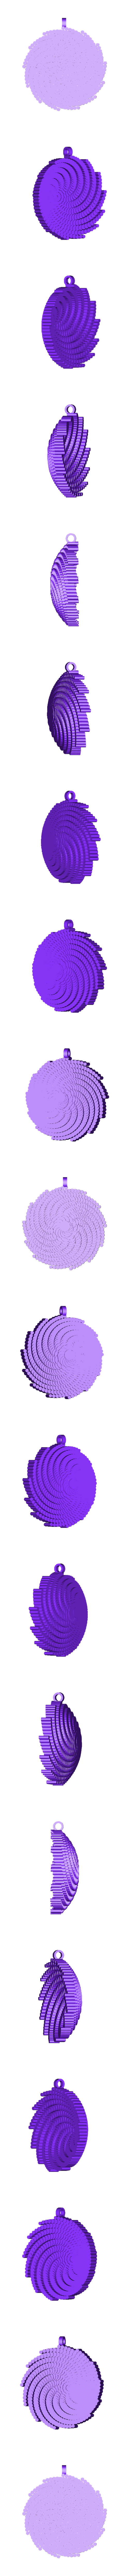 fermat_cylinder_pendant_9_25_13.stl Download free STL file H1-H0's Jewelry • 3D print template, leothemakerprince